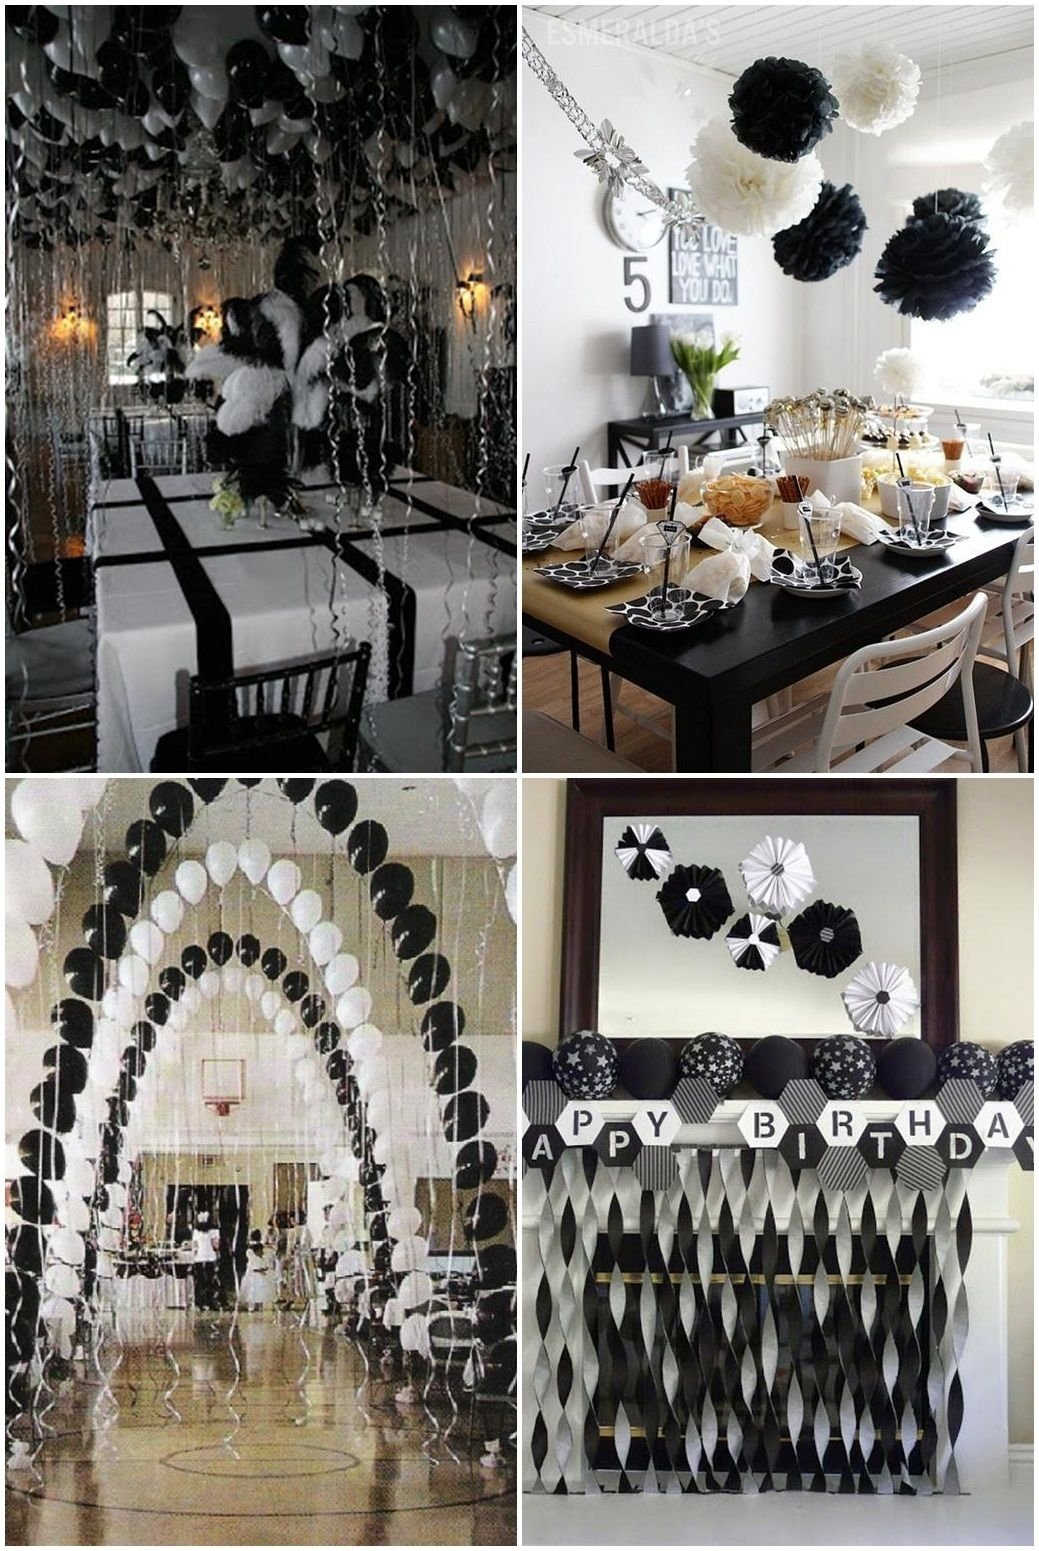 10 Spectacular Ideas For 25Th Birthday Party black and white graduation party ideas father daughter dance decor